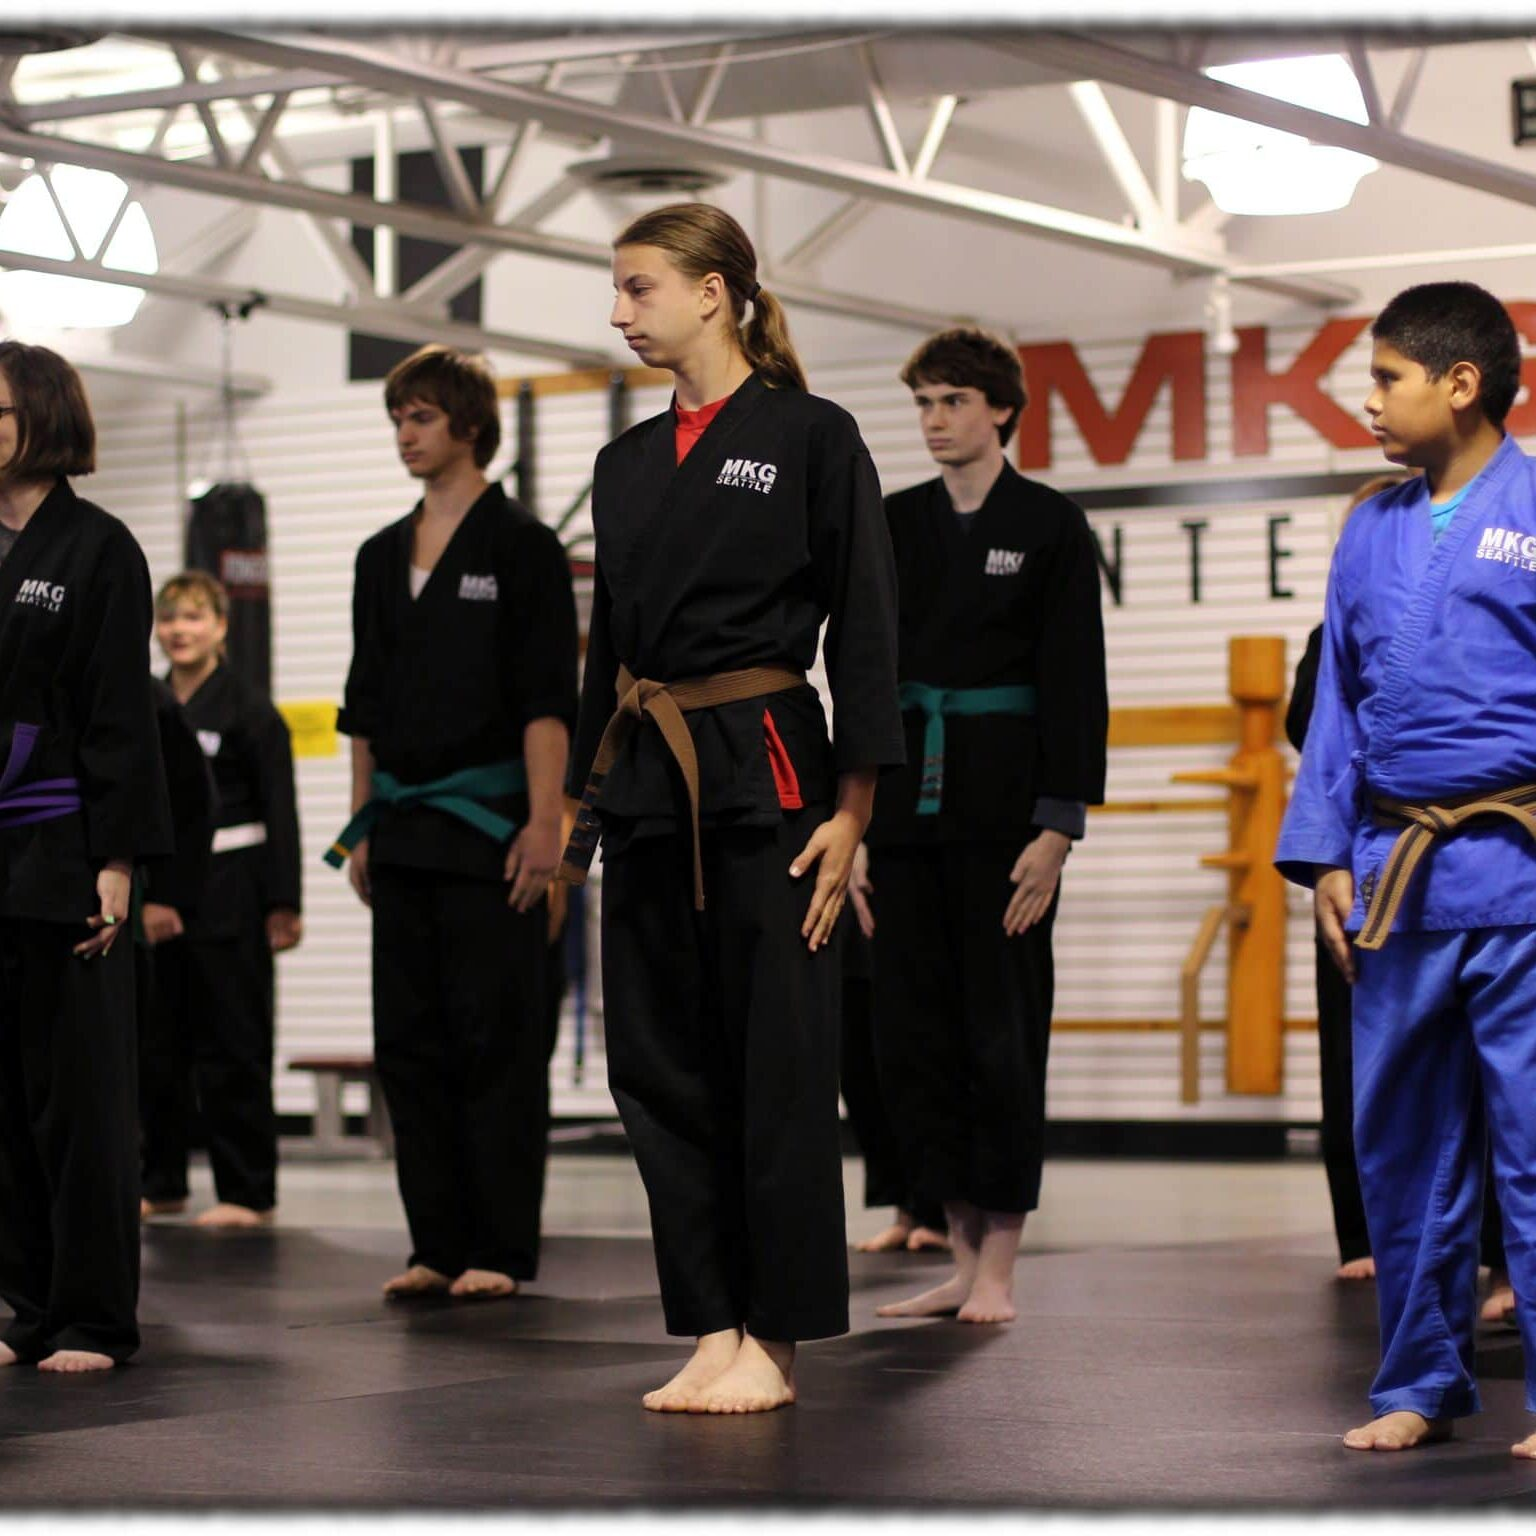 Kids_martial_arts2